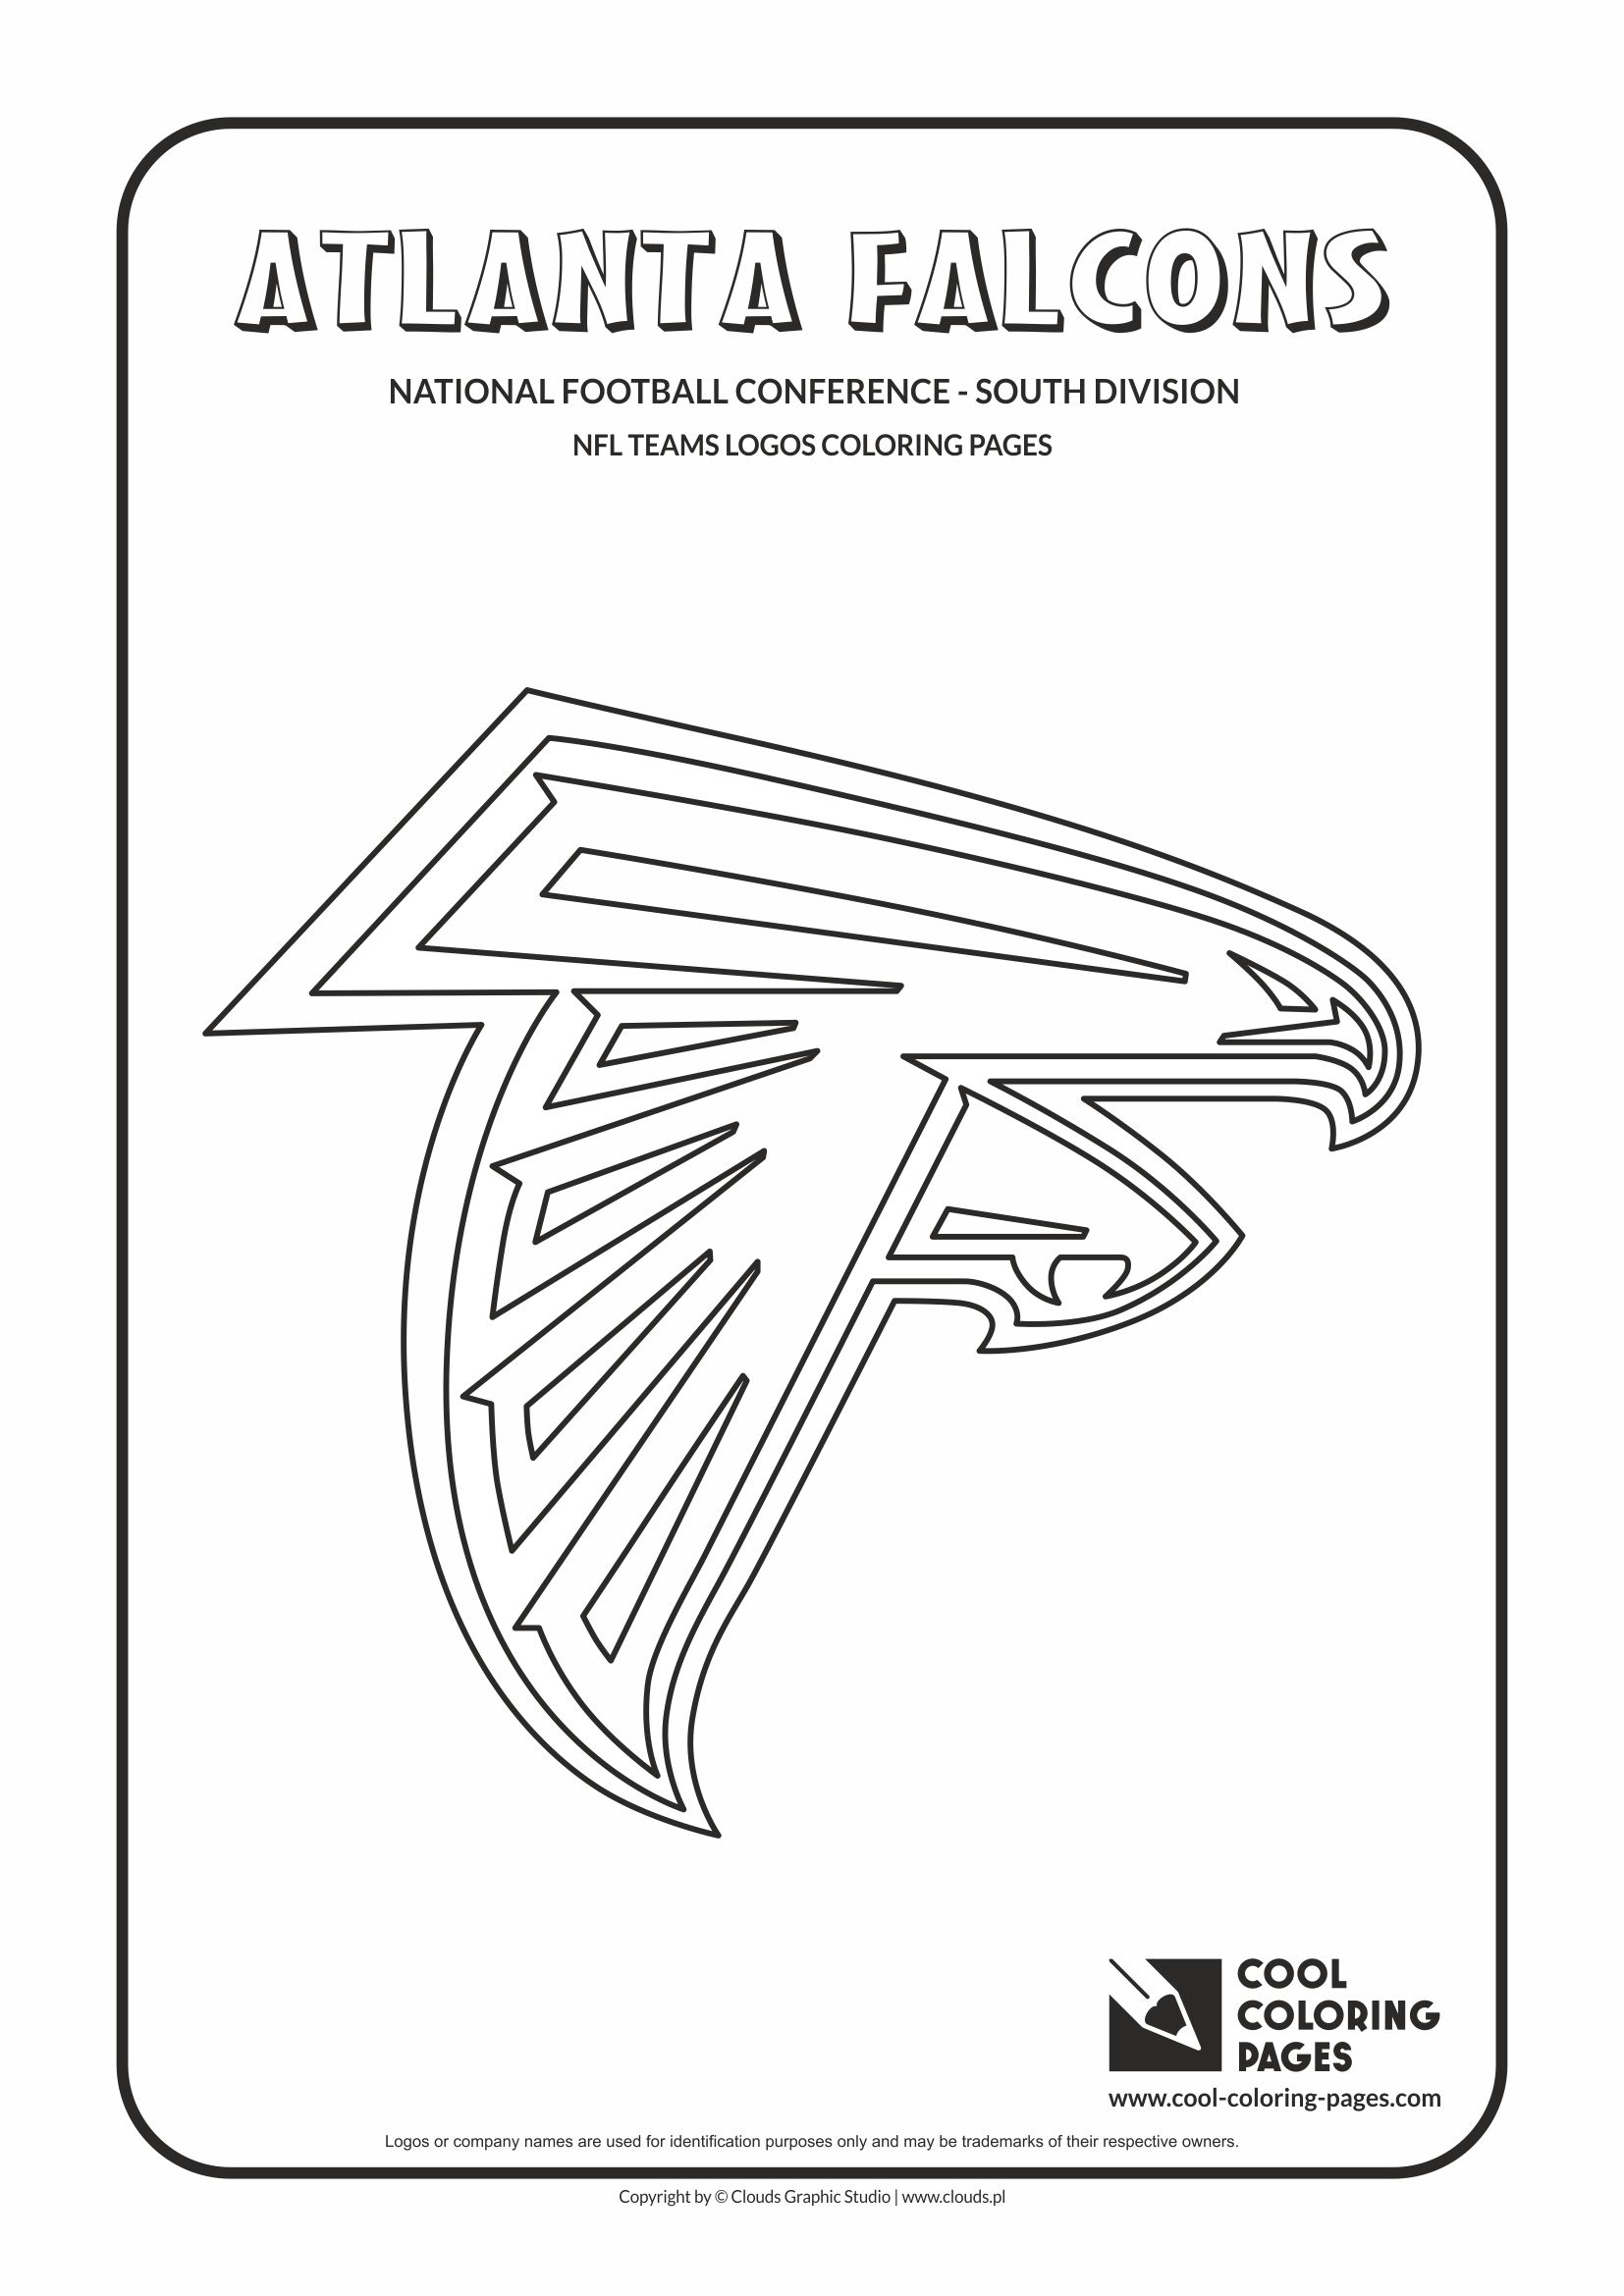 Cool Coloring Pages - NFL American Football Clubs Logos - National Football Conference - East Division / Atlanta Falcons logo / Coloring page with Atlanta Falcons logo